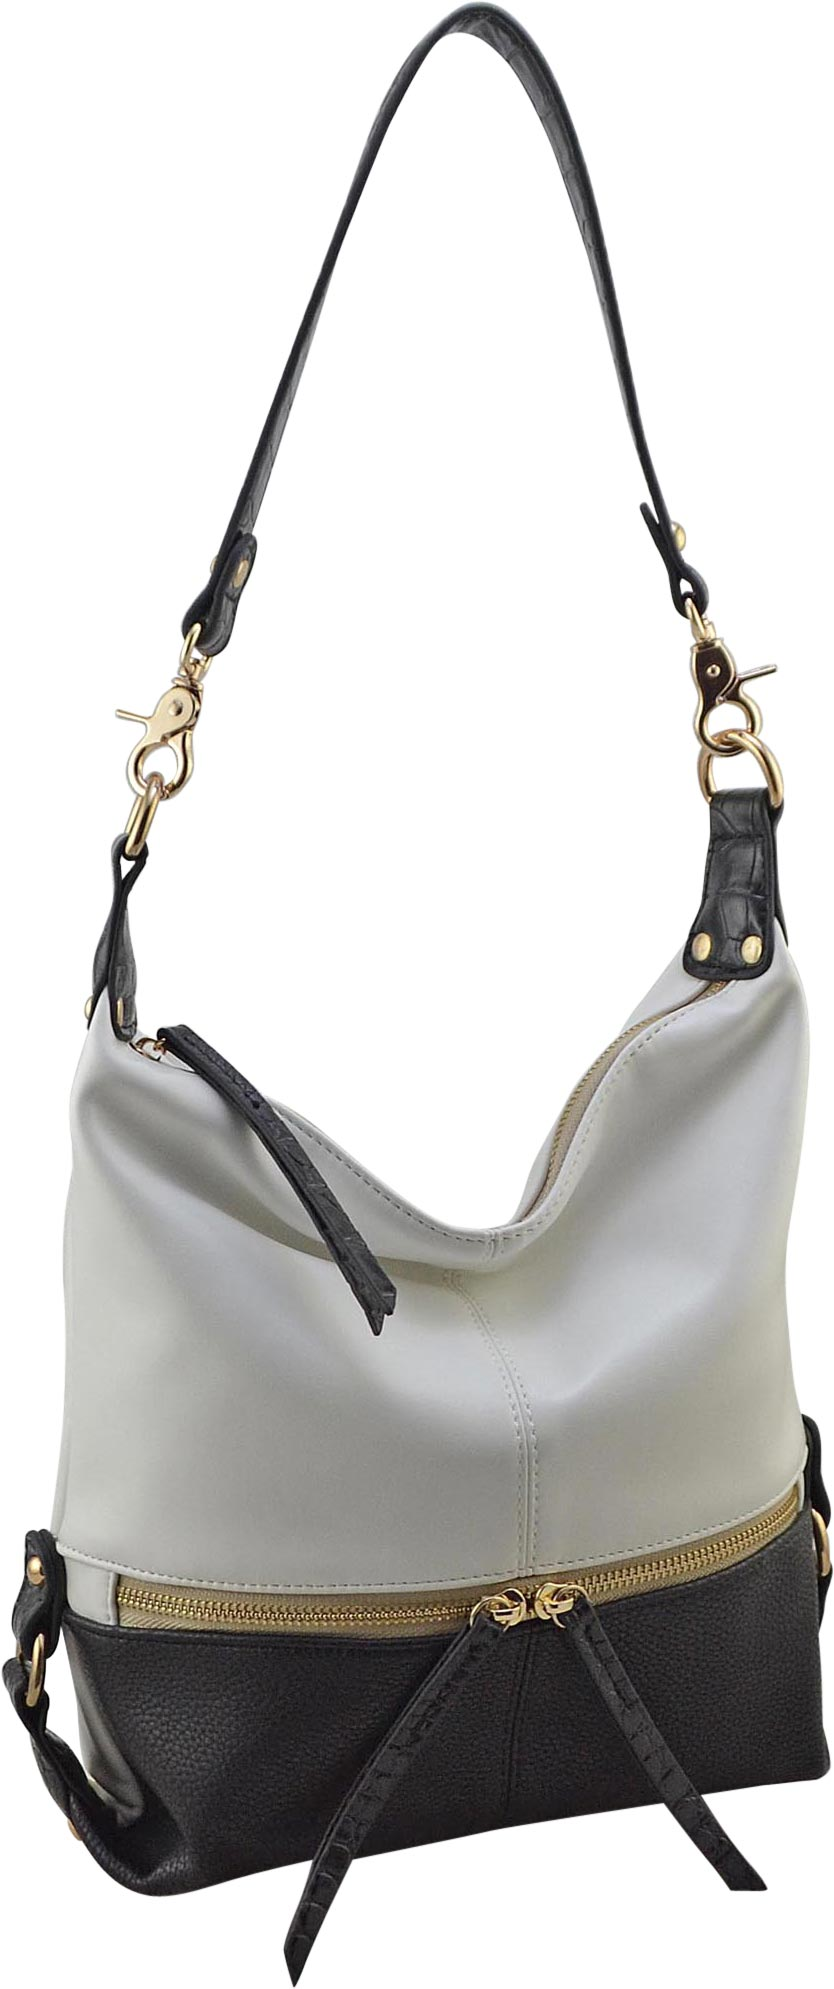 Colorblock Hobo- Small - Susie O's Handbags